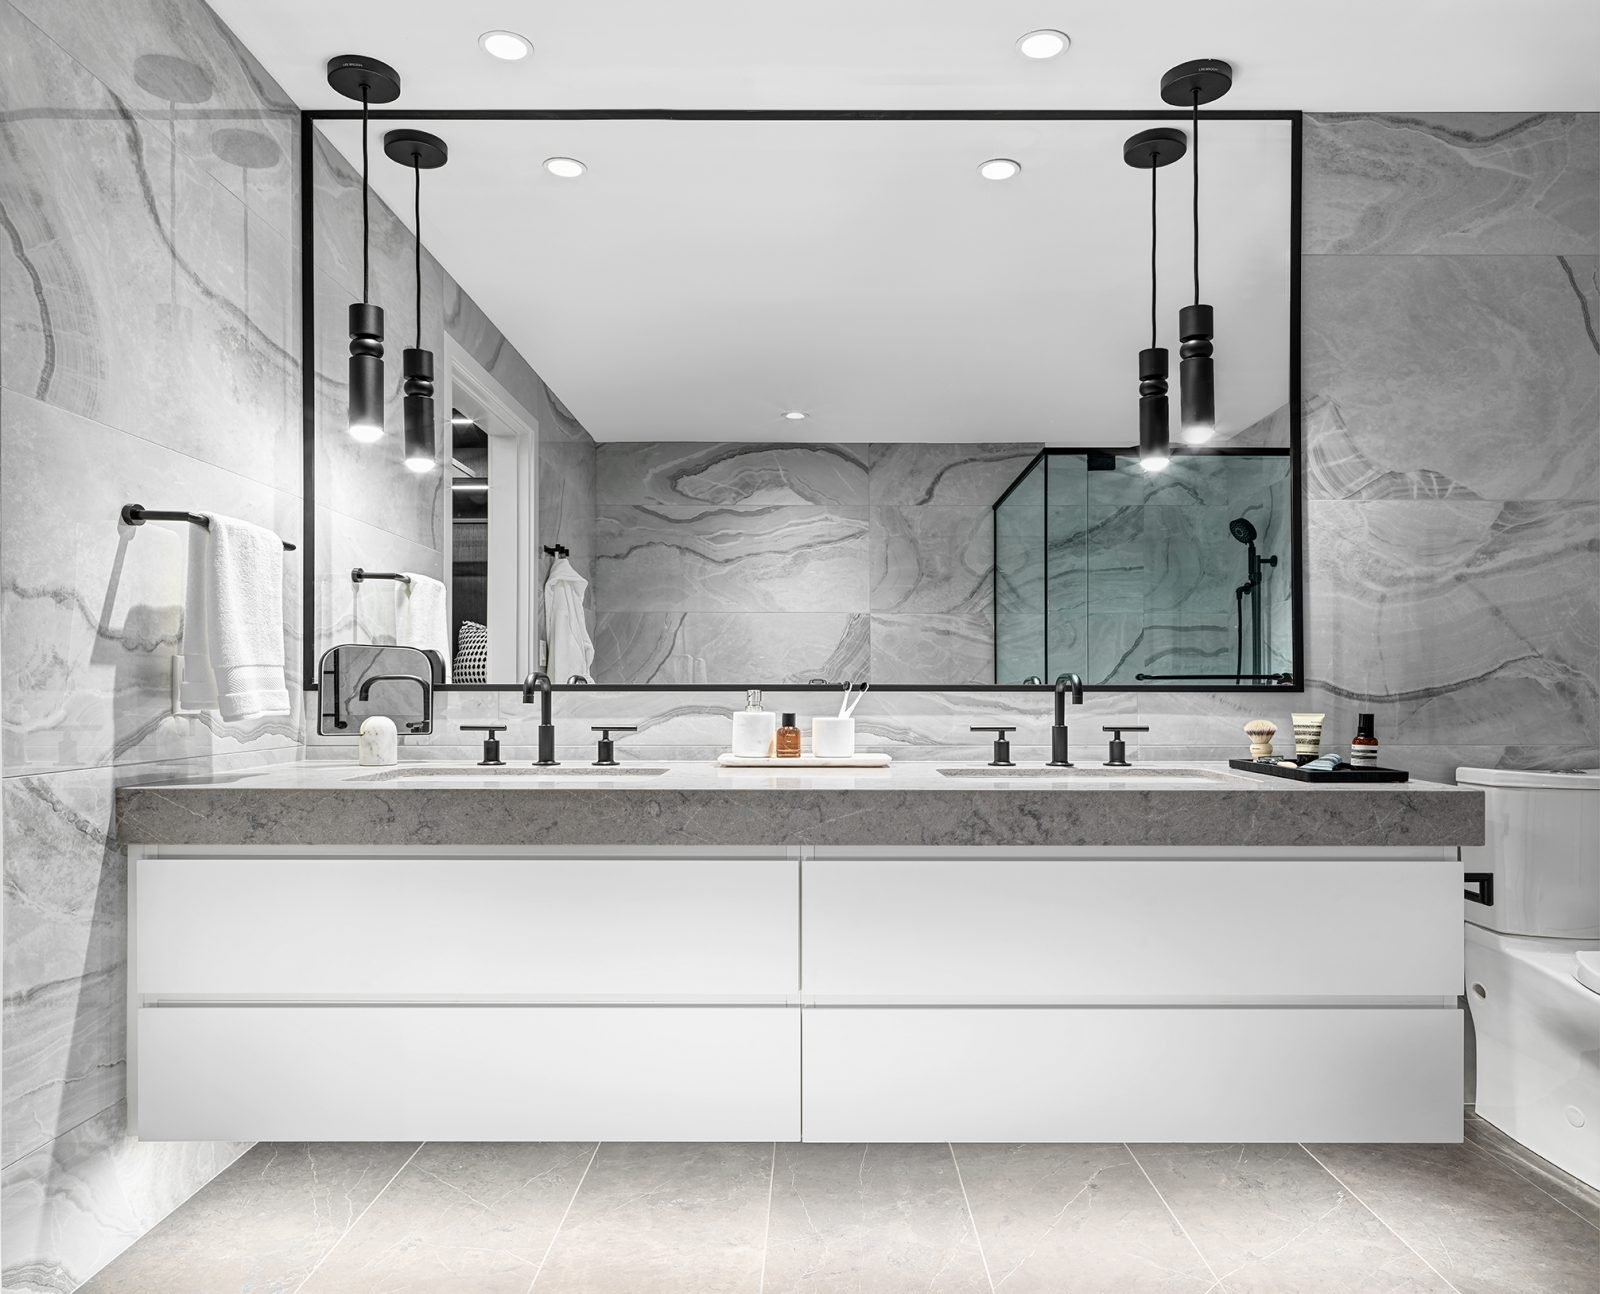 Chlo� Kerrisdale by Matchpoint Development!